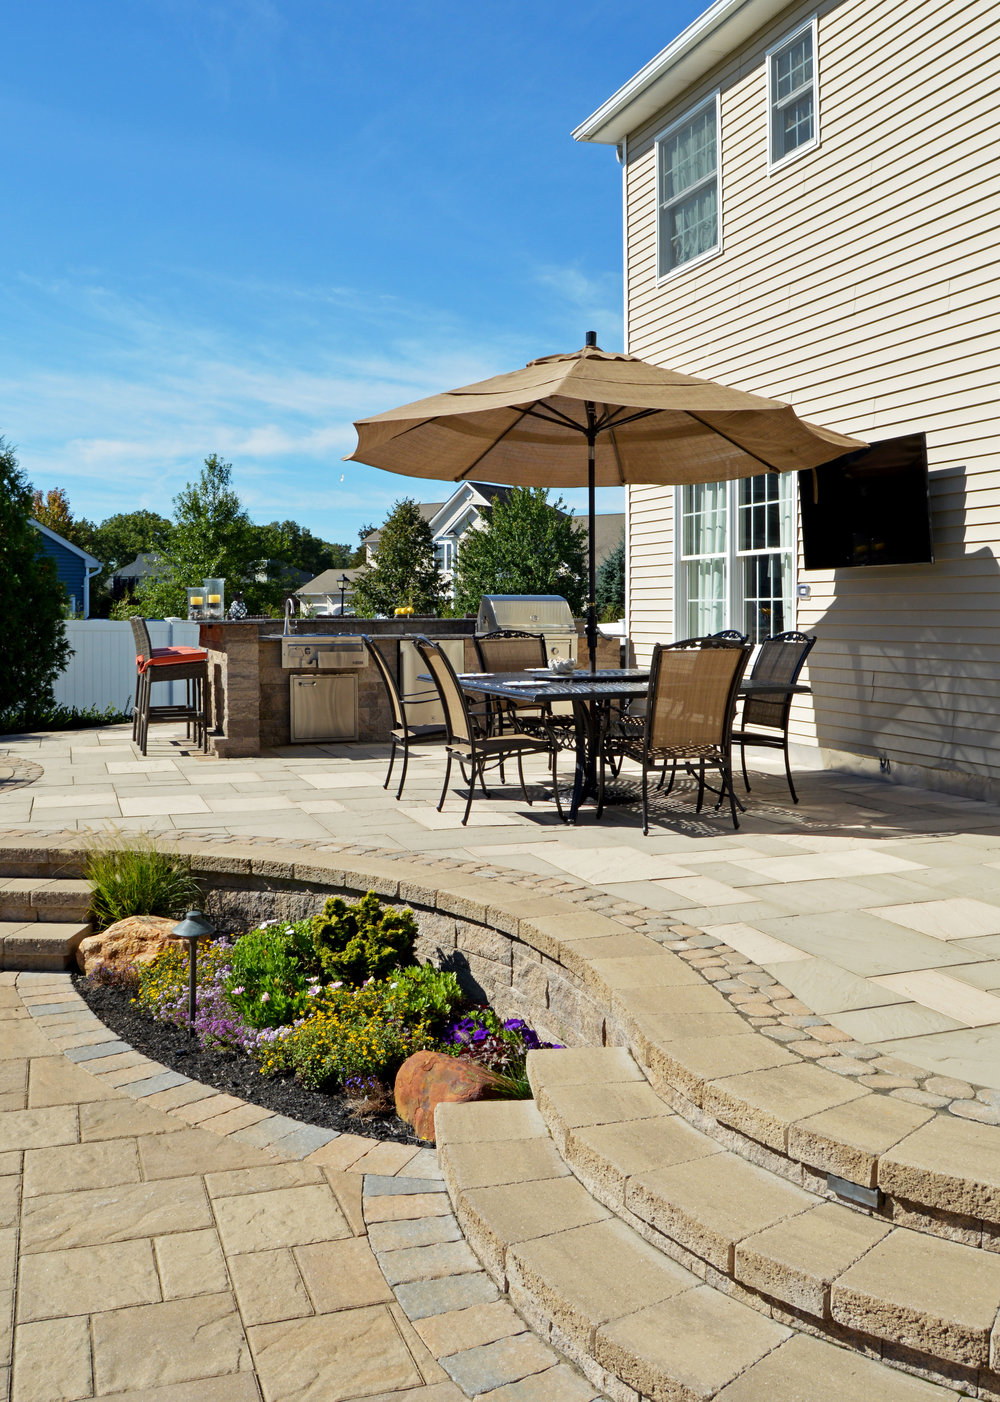 Smithtown, NY patio with dining area